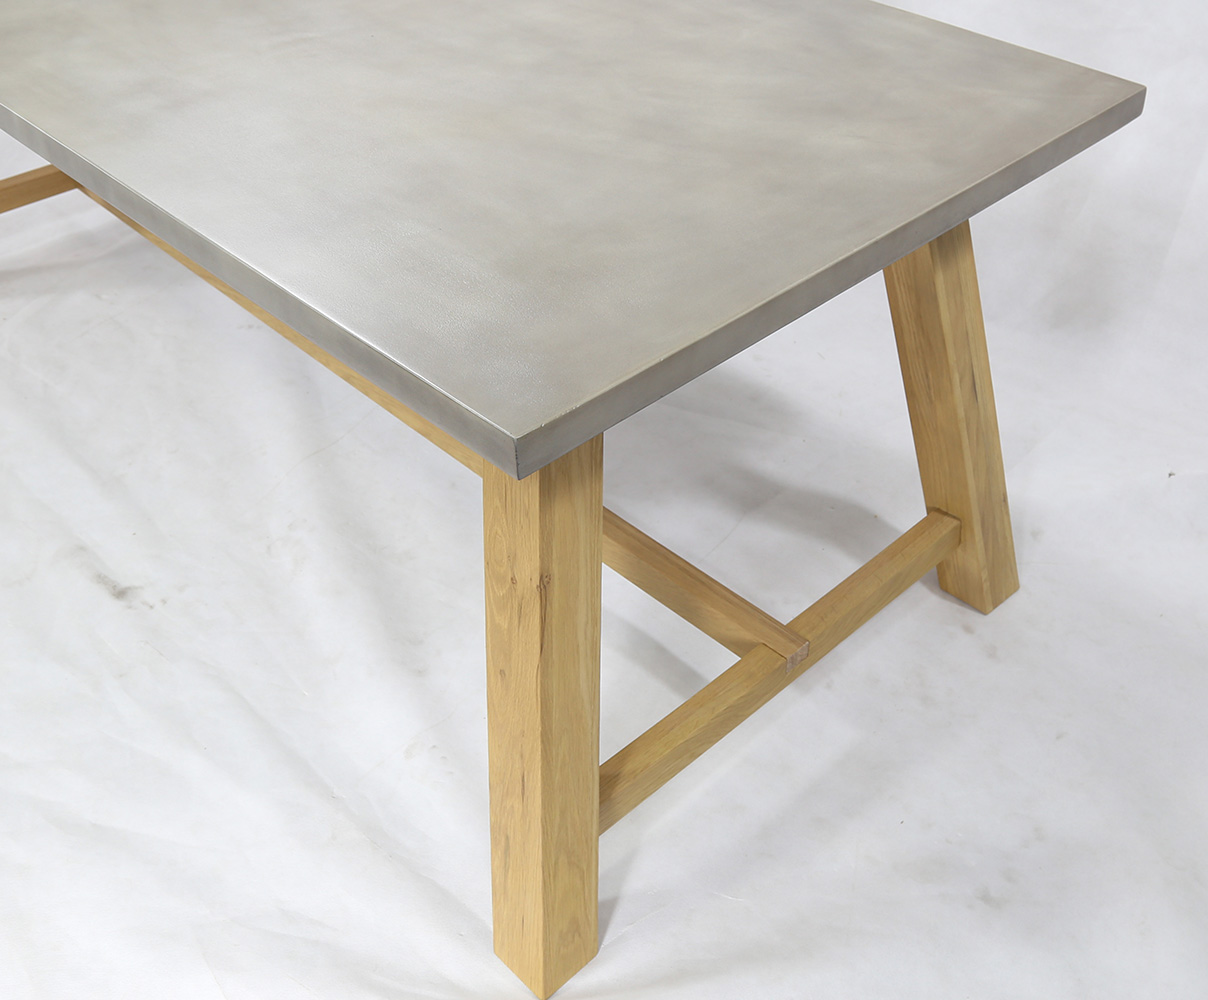 Fresno Dining table with Cemboard on top